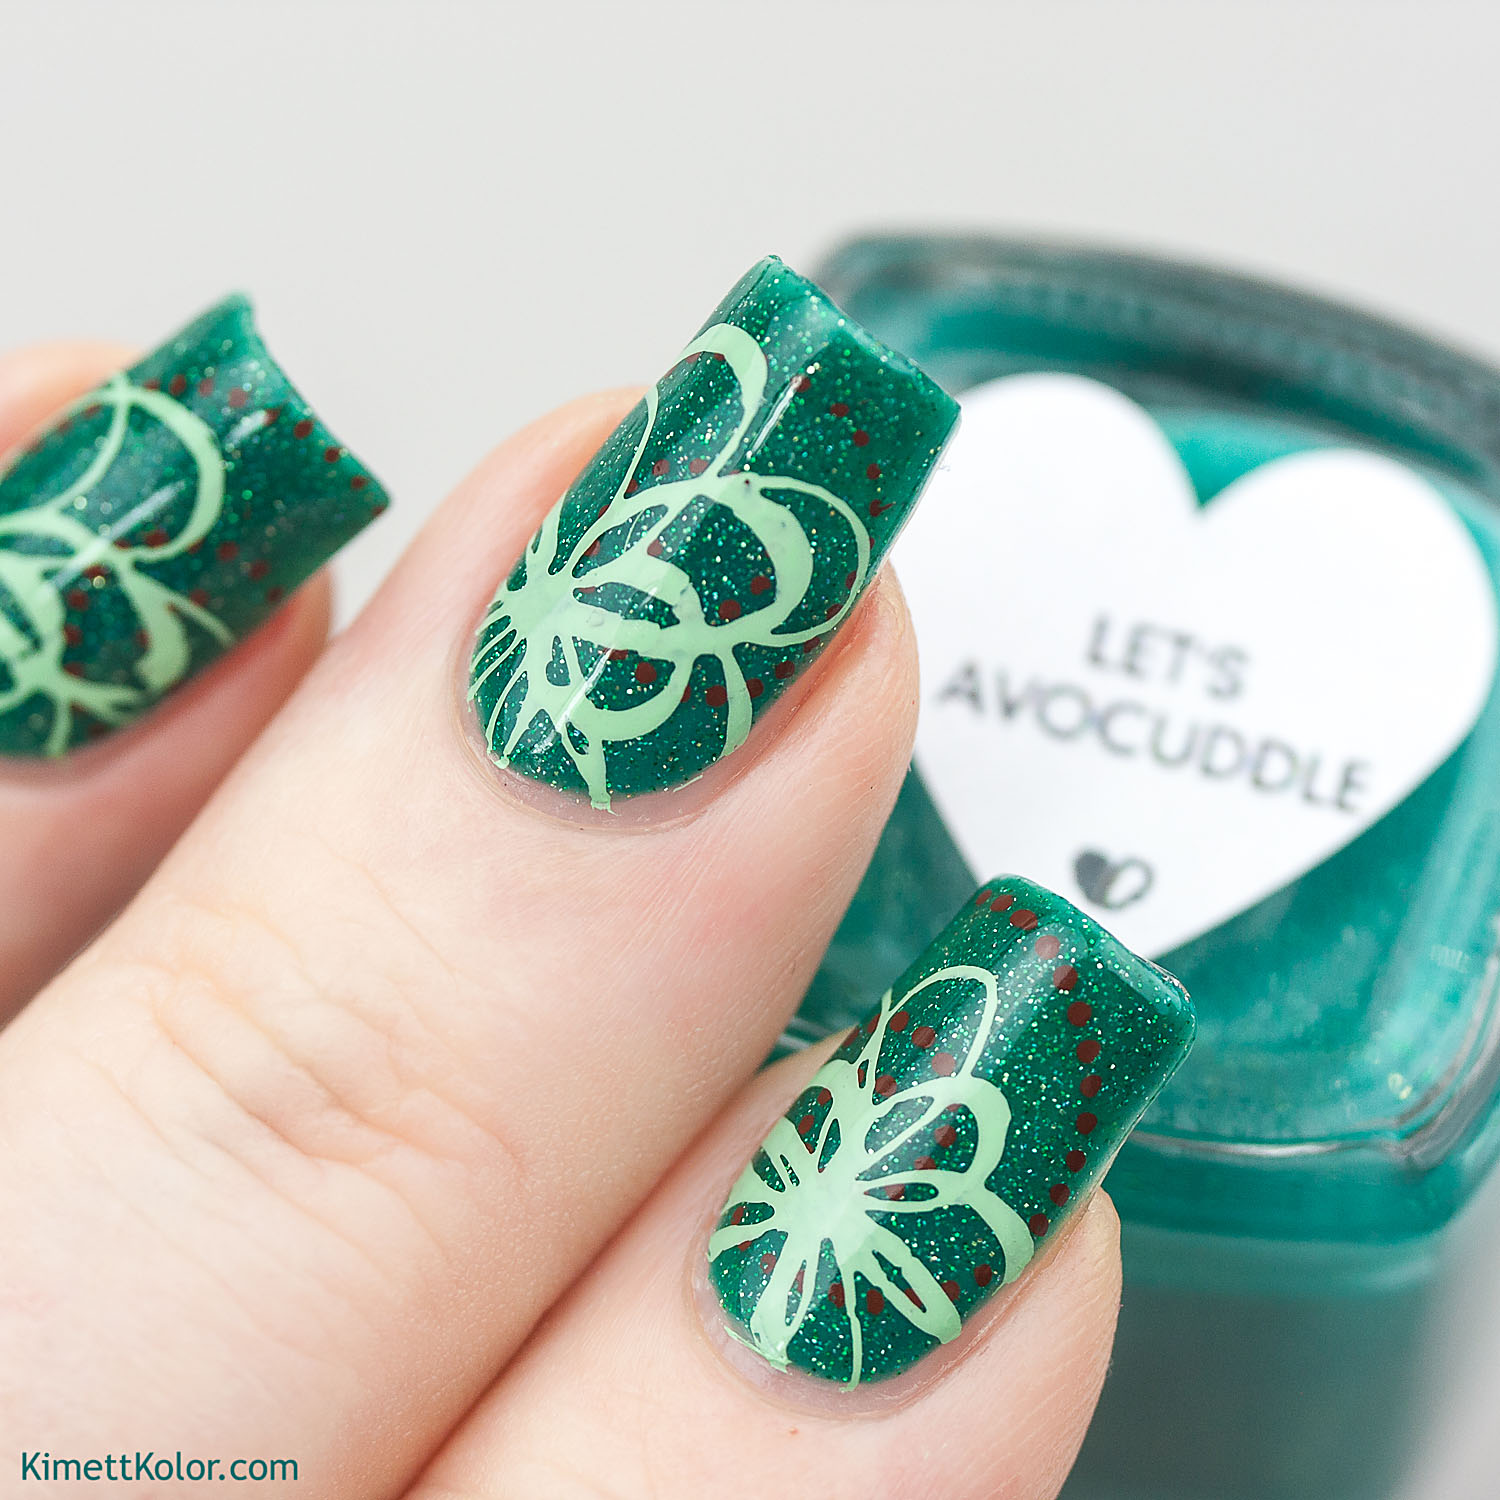 KimettKolor Lets Avocuddle with Stamping Nail Art